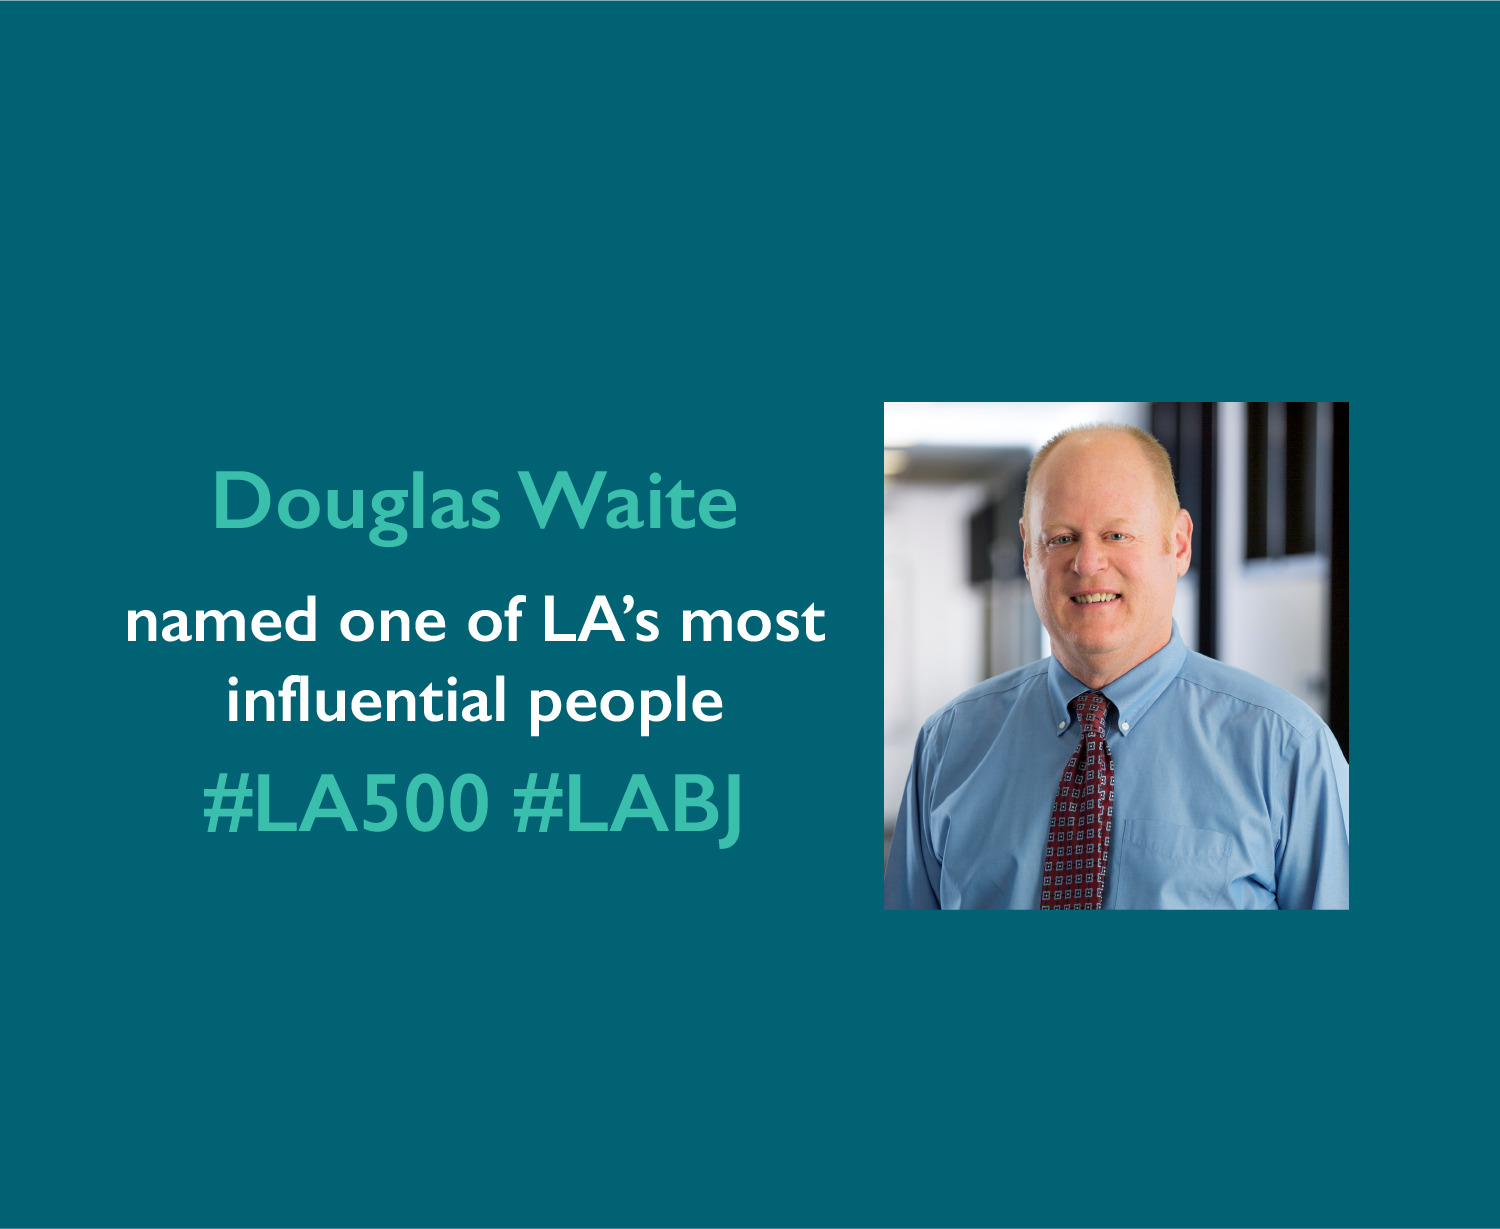 Doug Waite named one of LA's most influential people